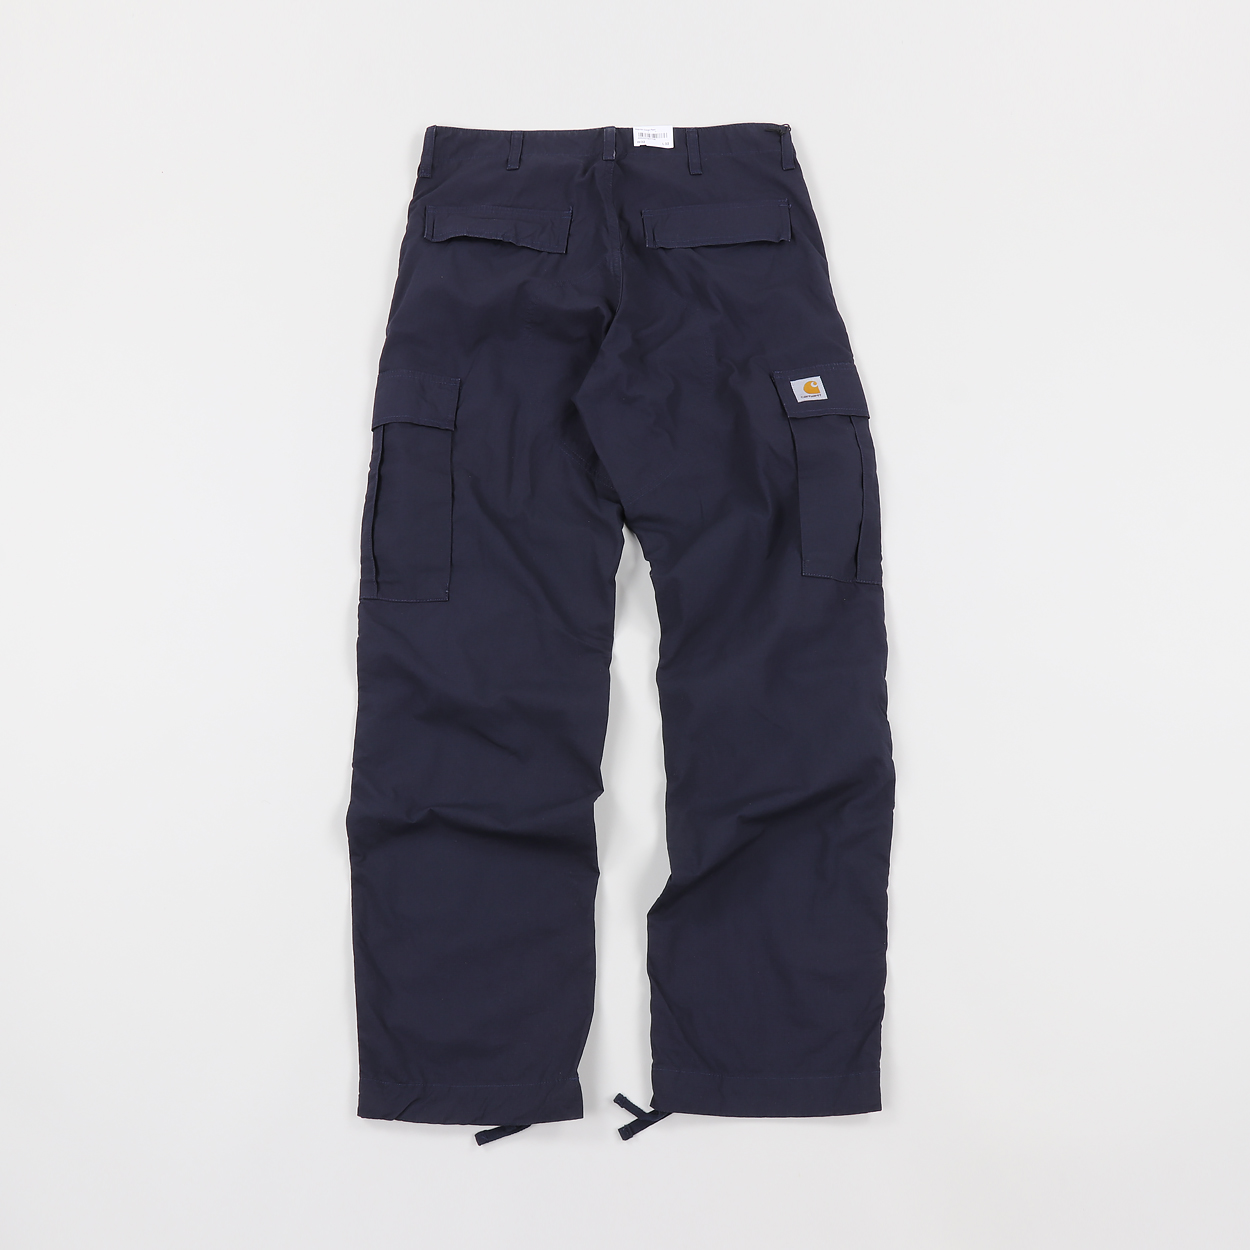 cheapest sale promo code new selection Mens Carhartt Regular Fit Cargo Pants Trousers Navy Blue ...